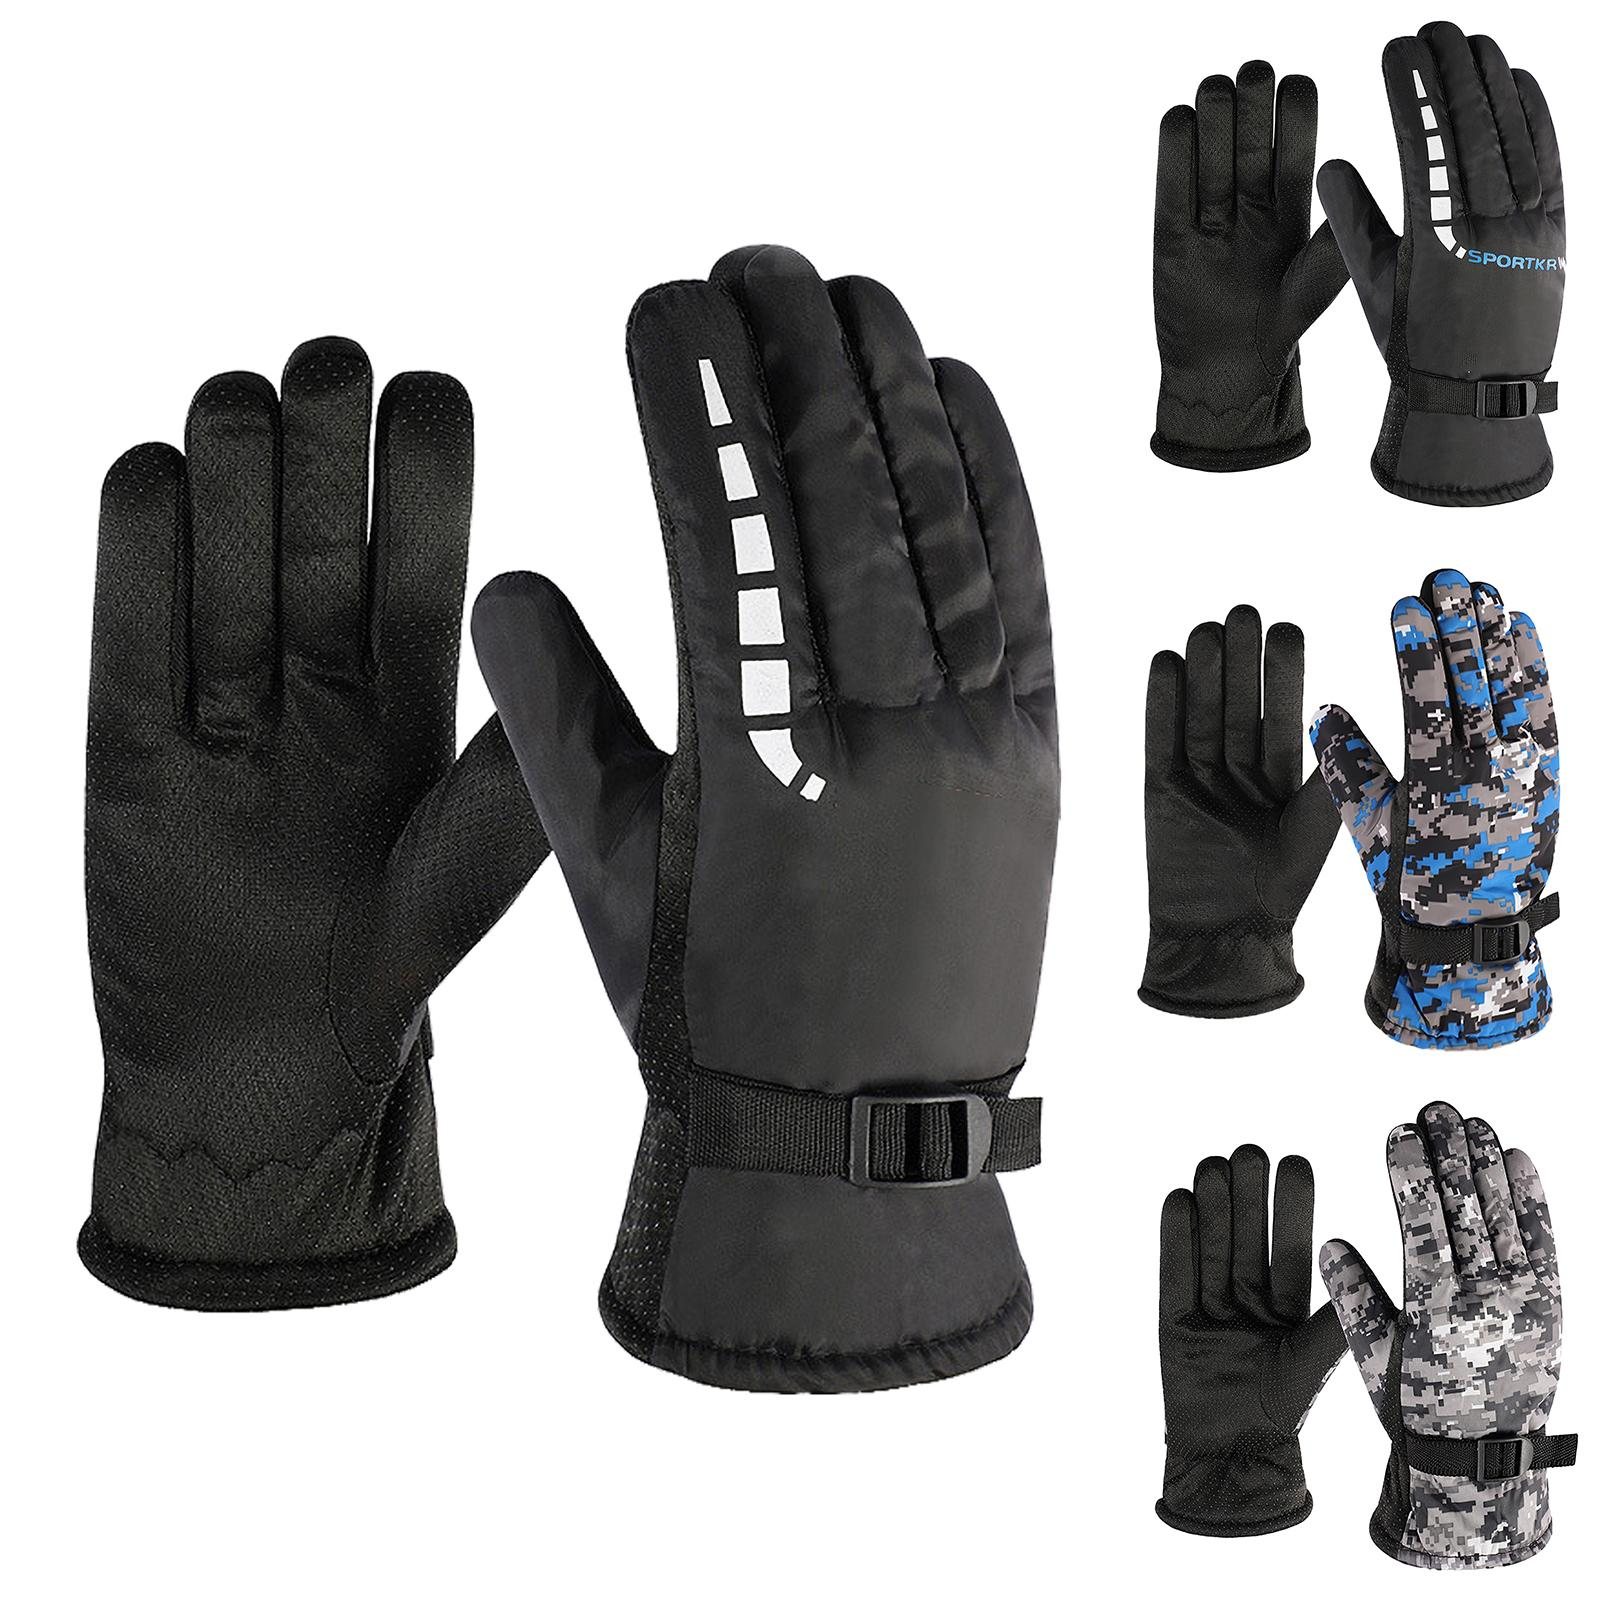 The Best Ski Gloves Thermal Waterproof Skiing Snowboard Gloves Snow Motorcycle Windproof -30 Degree Riding Hiking Winter Gloves